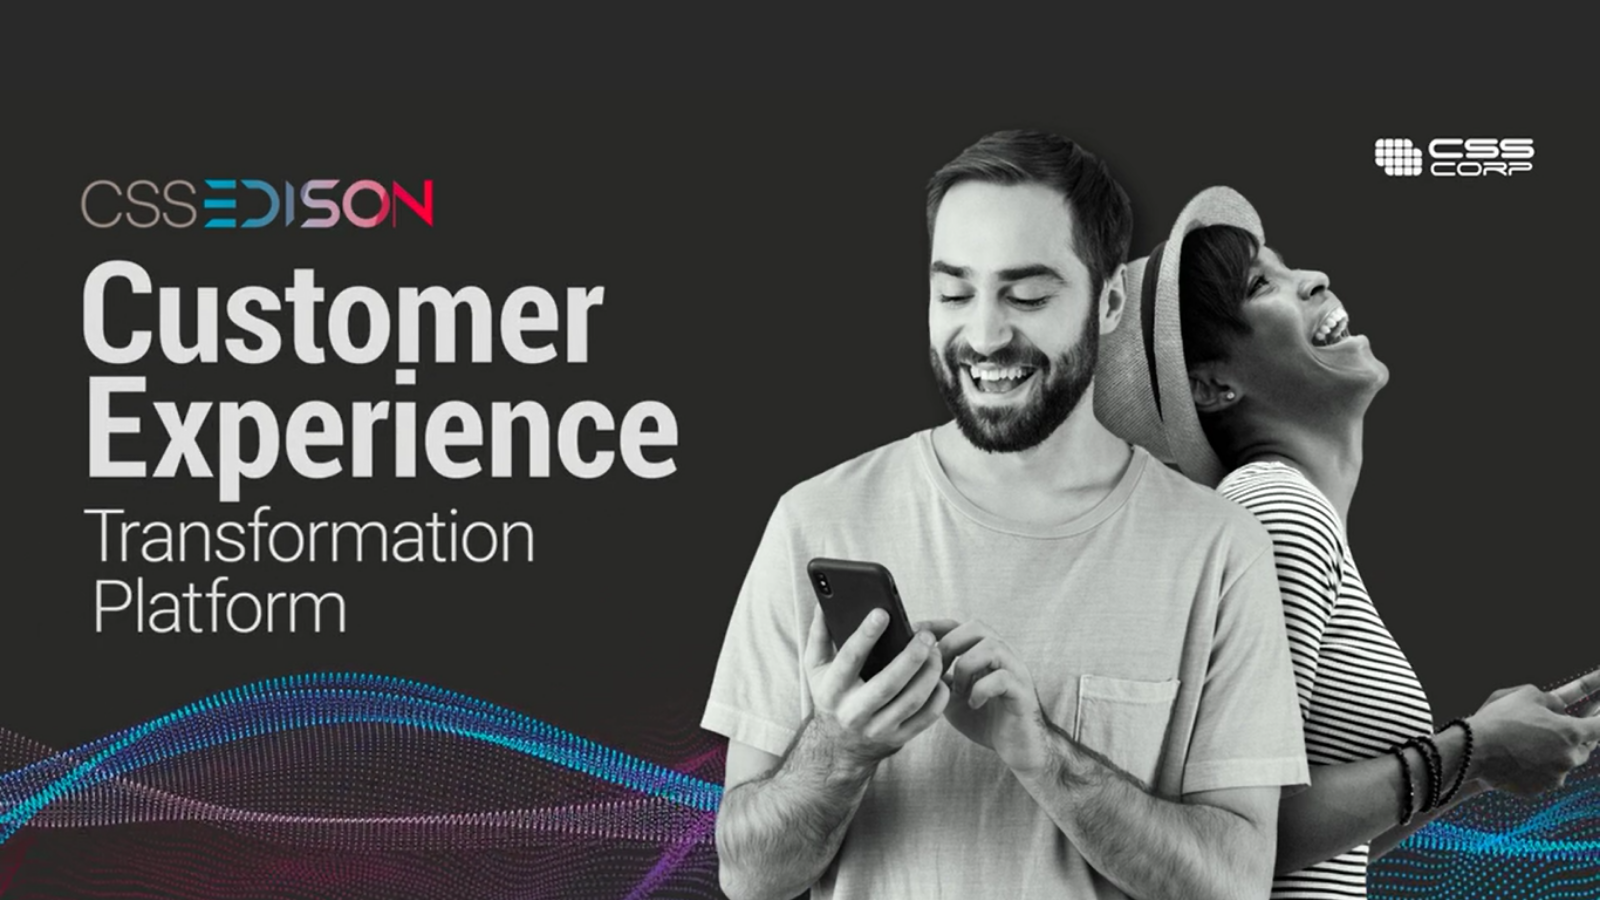 CSS EDISON™ Delivers Business Outcomes and ROI in CX